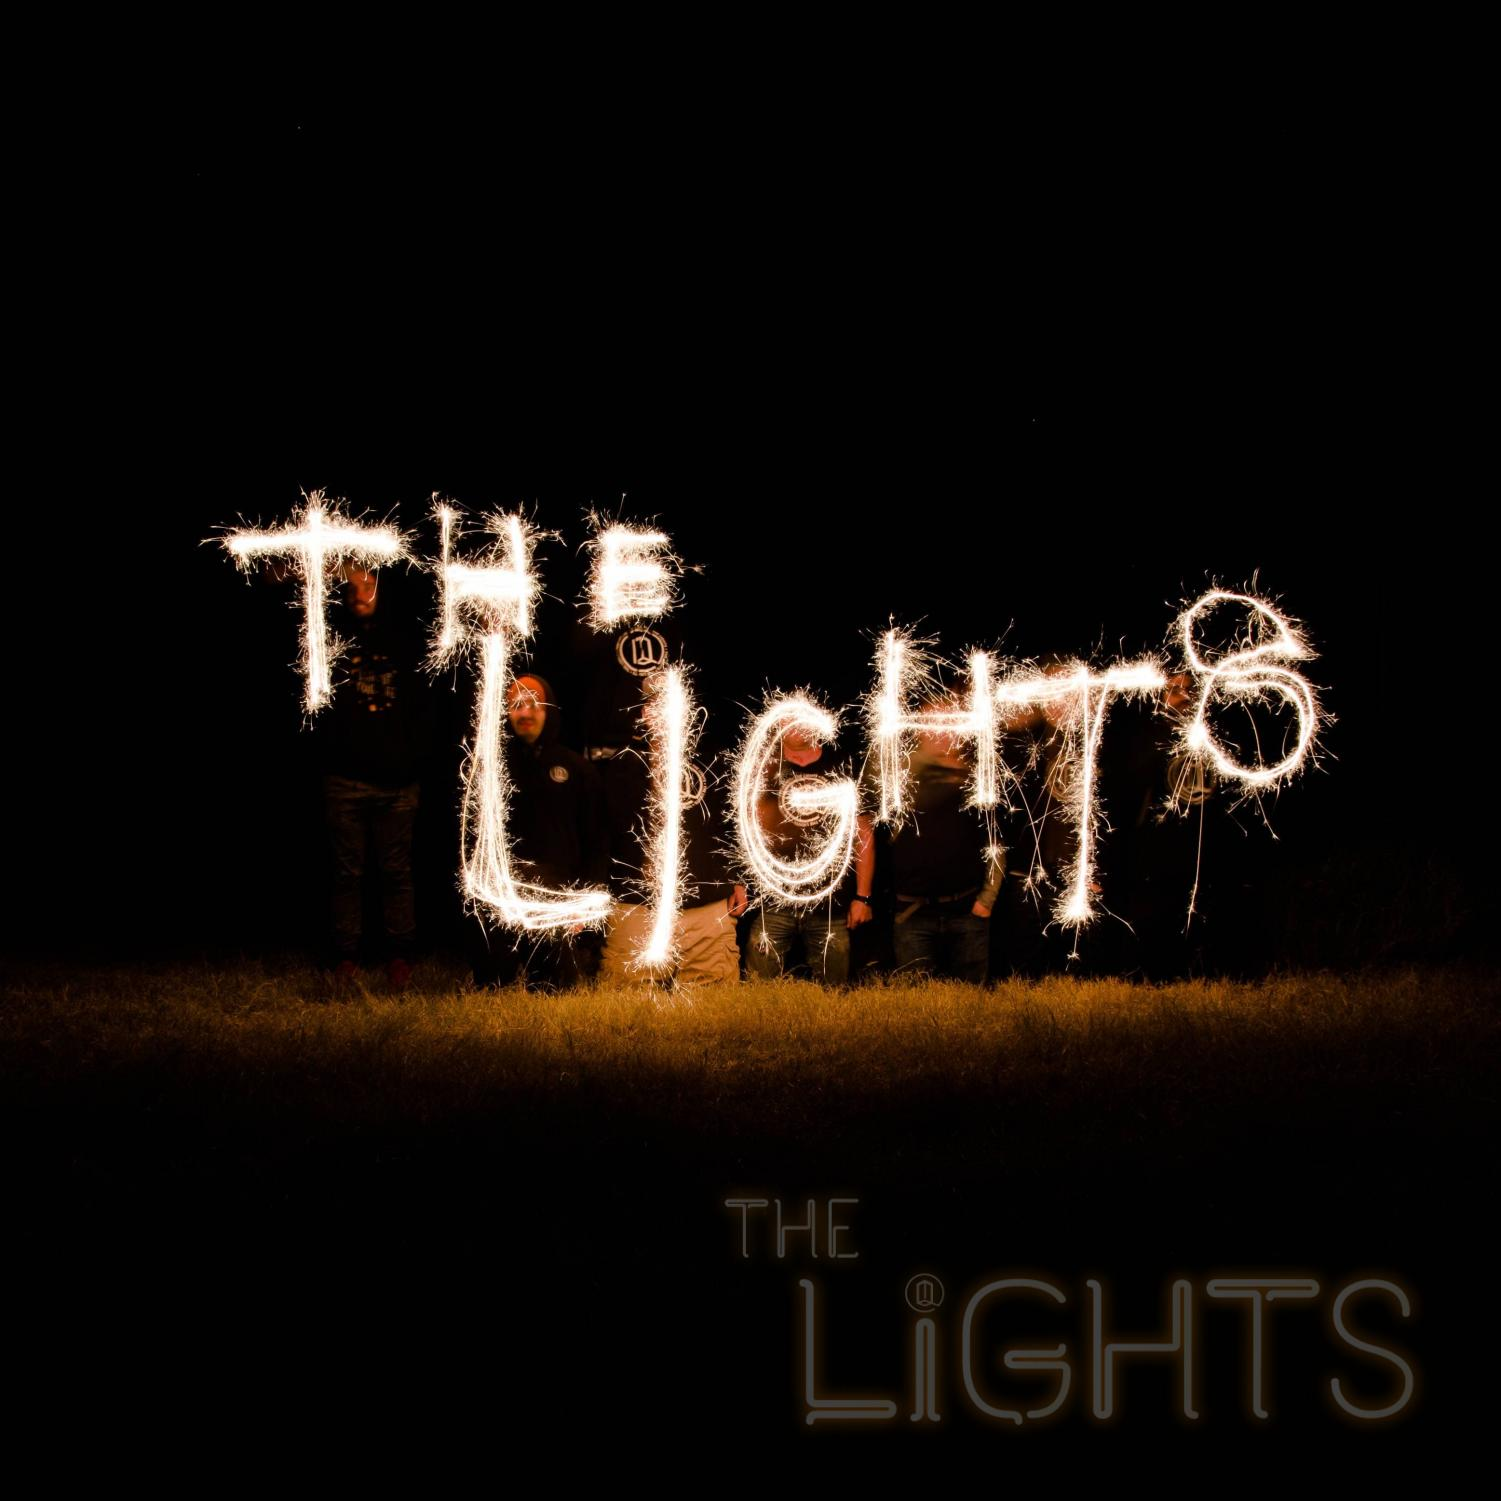 https://thelightsfest.com/gallery/